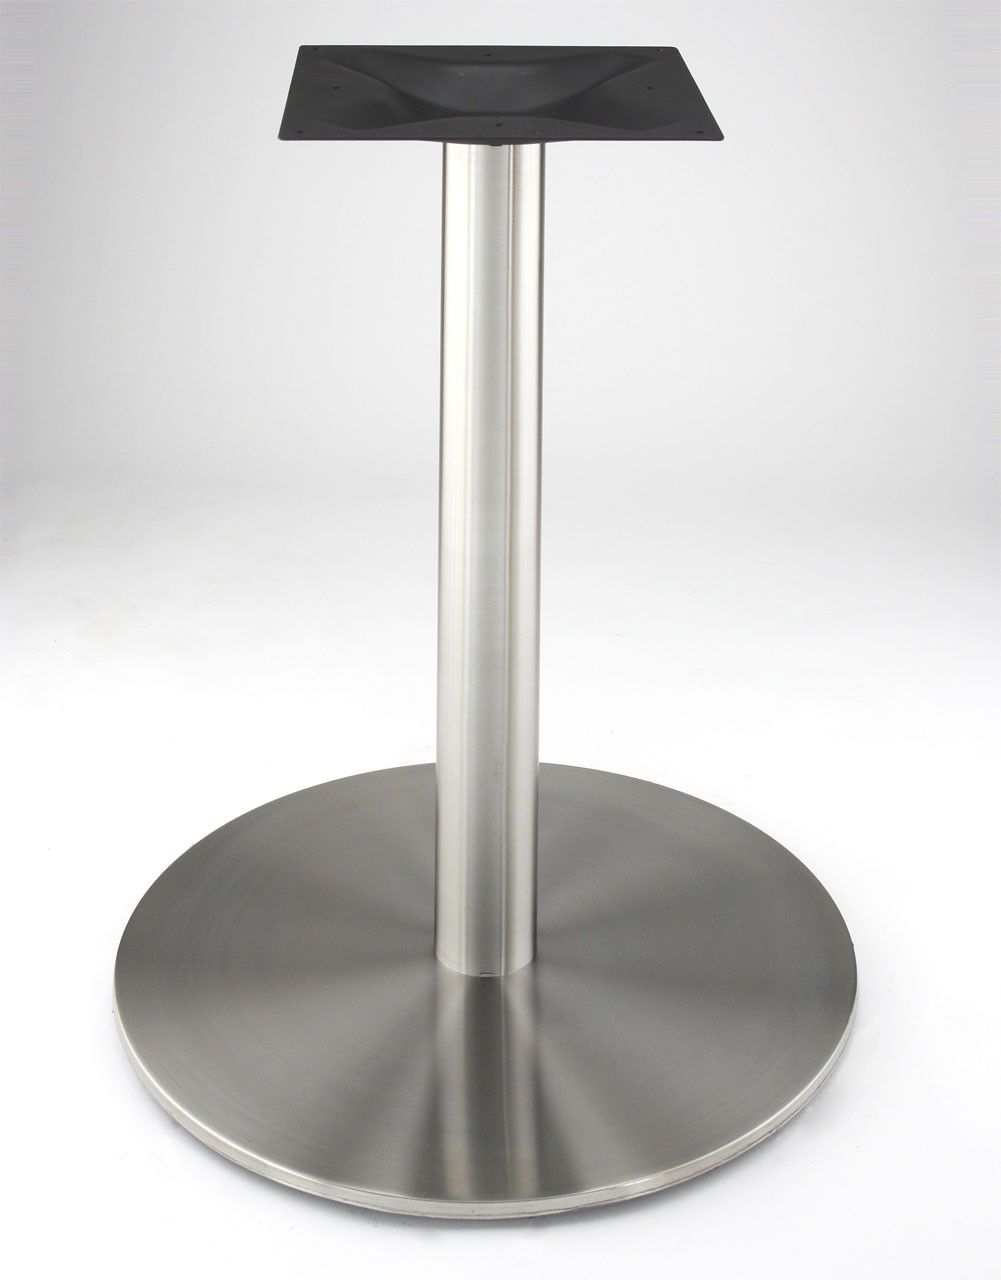 """RFL540D Dining Height Stainless Steel 21"""" Round Disk Style Pedestal Table Base, 28.2"""" height available at www.replacementtablelegs.com"""